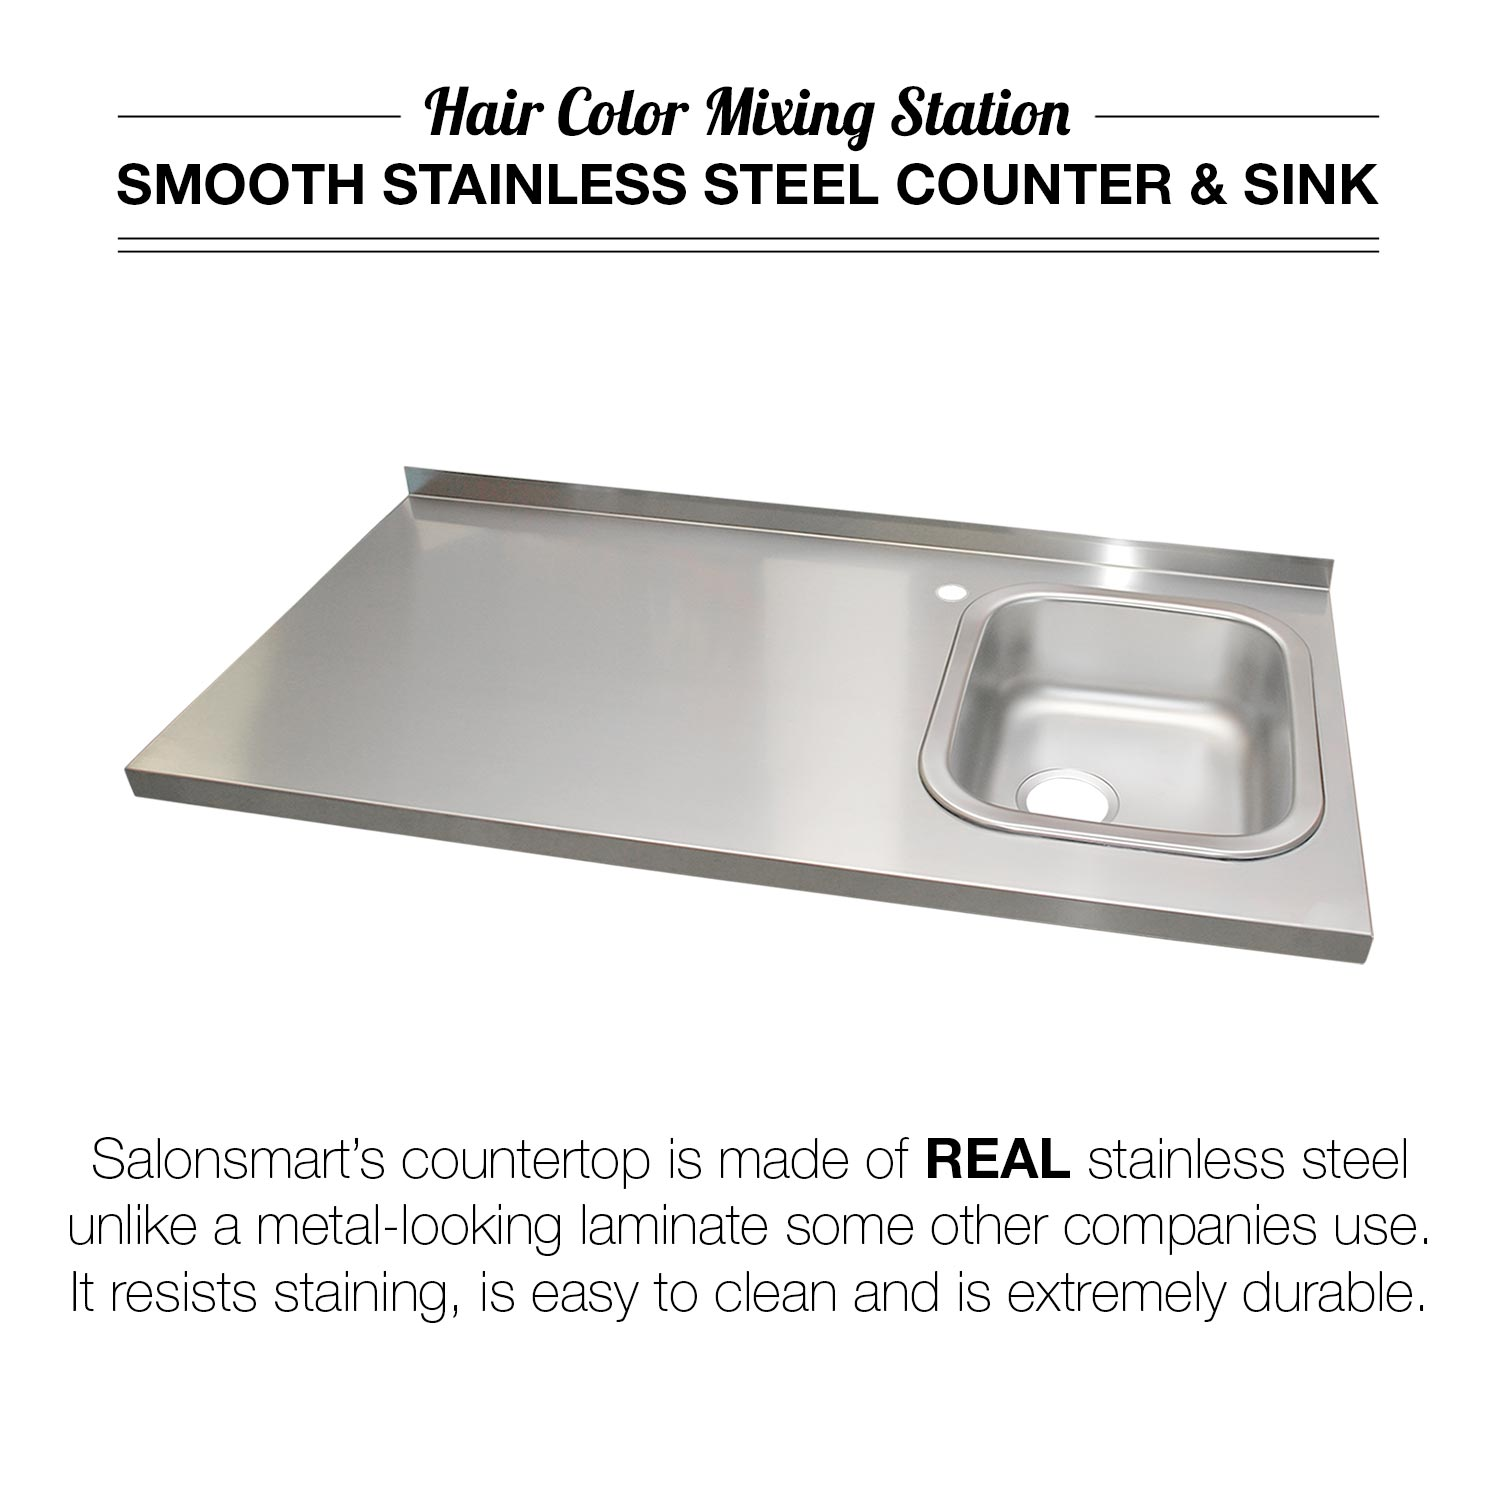 4' Color Mixing Station with Sink and Stainless Steel Counter alternative product image 1